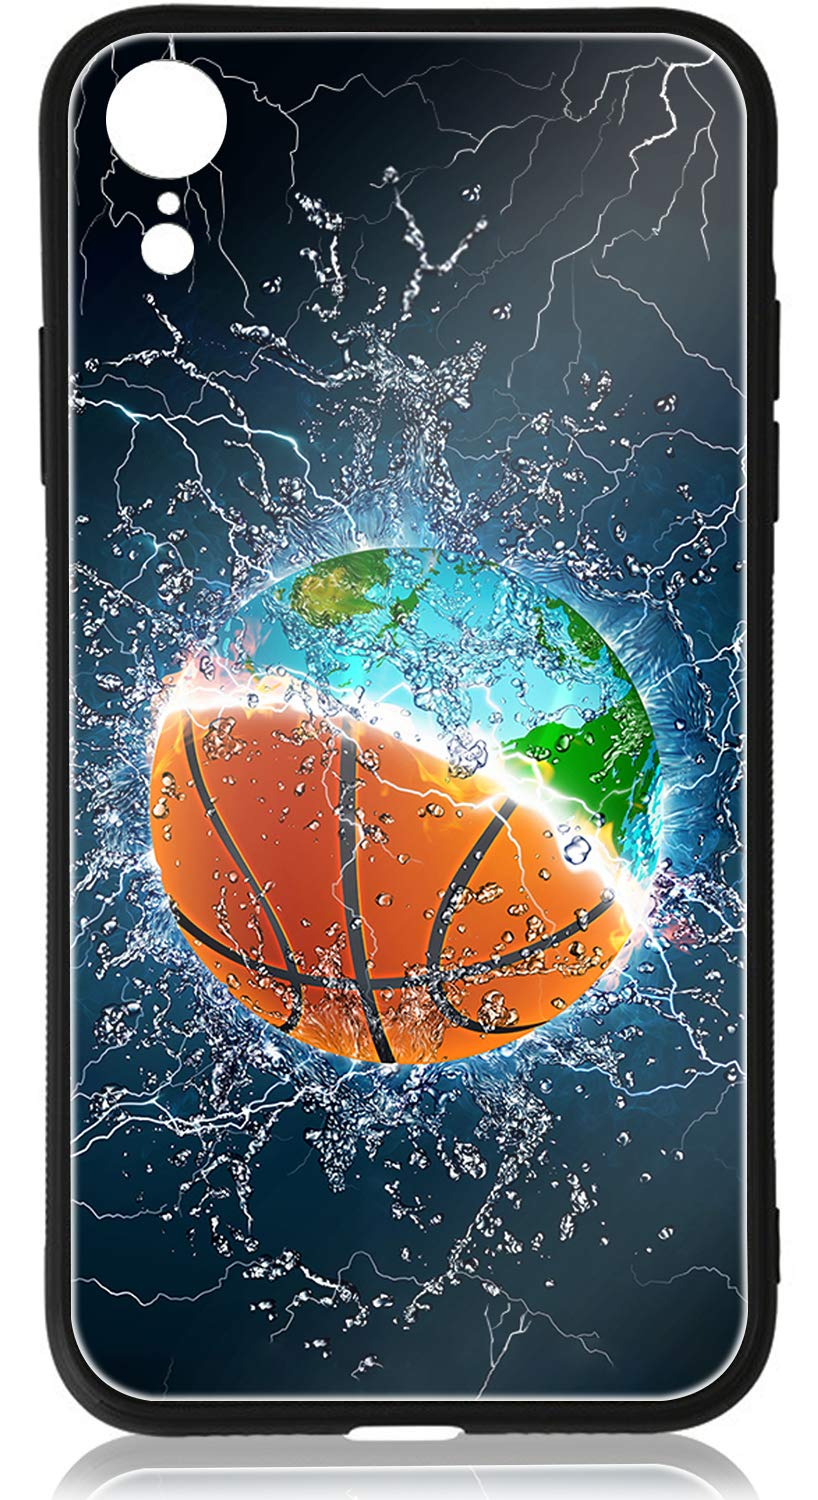 iPhone XR Cases iPhone XR Case HuntHawk Anti-Drop TPU and Hard PC Scratch-Proof Tempered Glass Protector Fit iPhone XR Phone Case for Girls Boys Earth and Basketball in Water